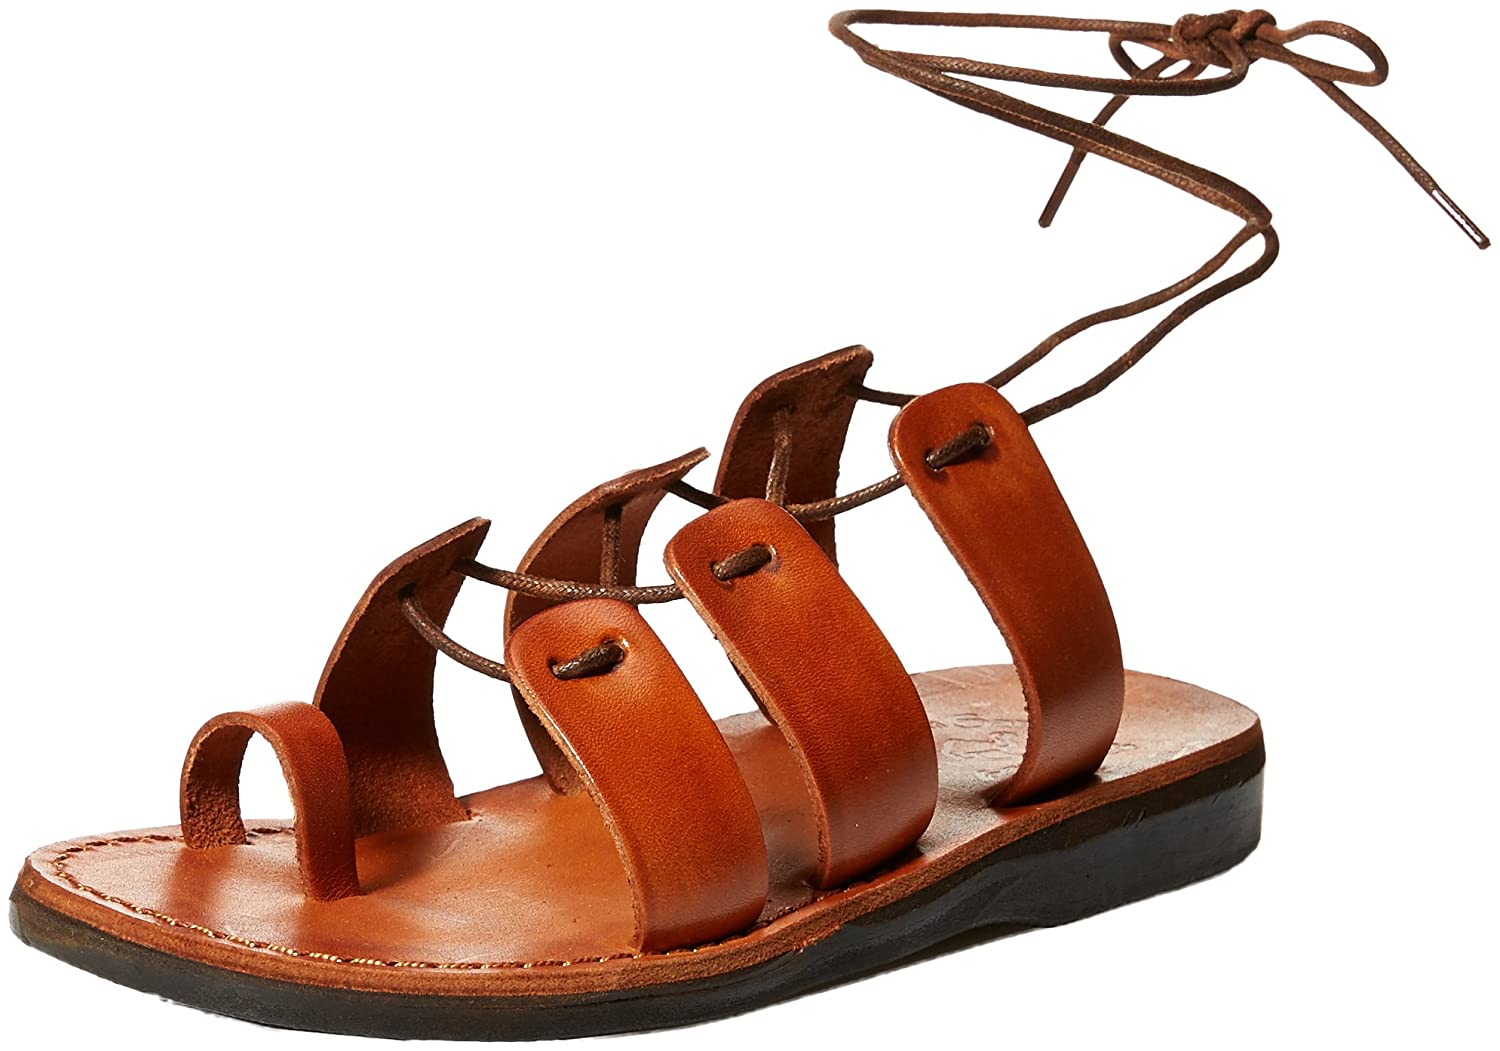 Jerusalem 36 Sandals Women's Deborah Slide Sandal B075KYCTRR 36 Jerusalem Medium EU (5-5.5 US)|Honey 3b36e8